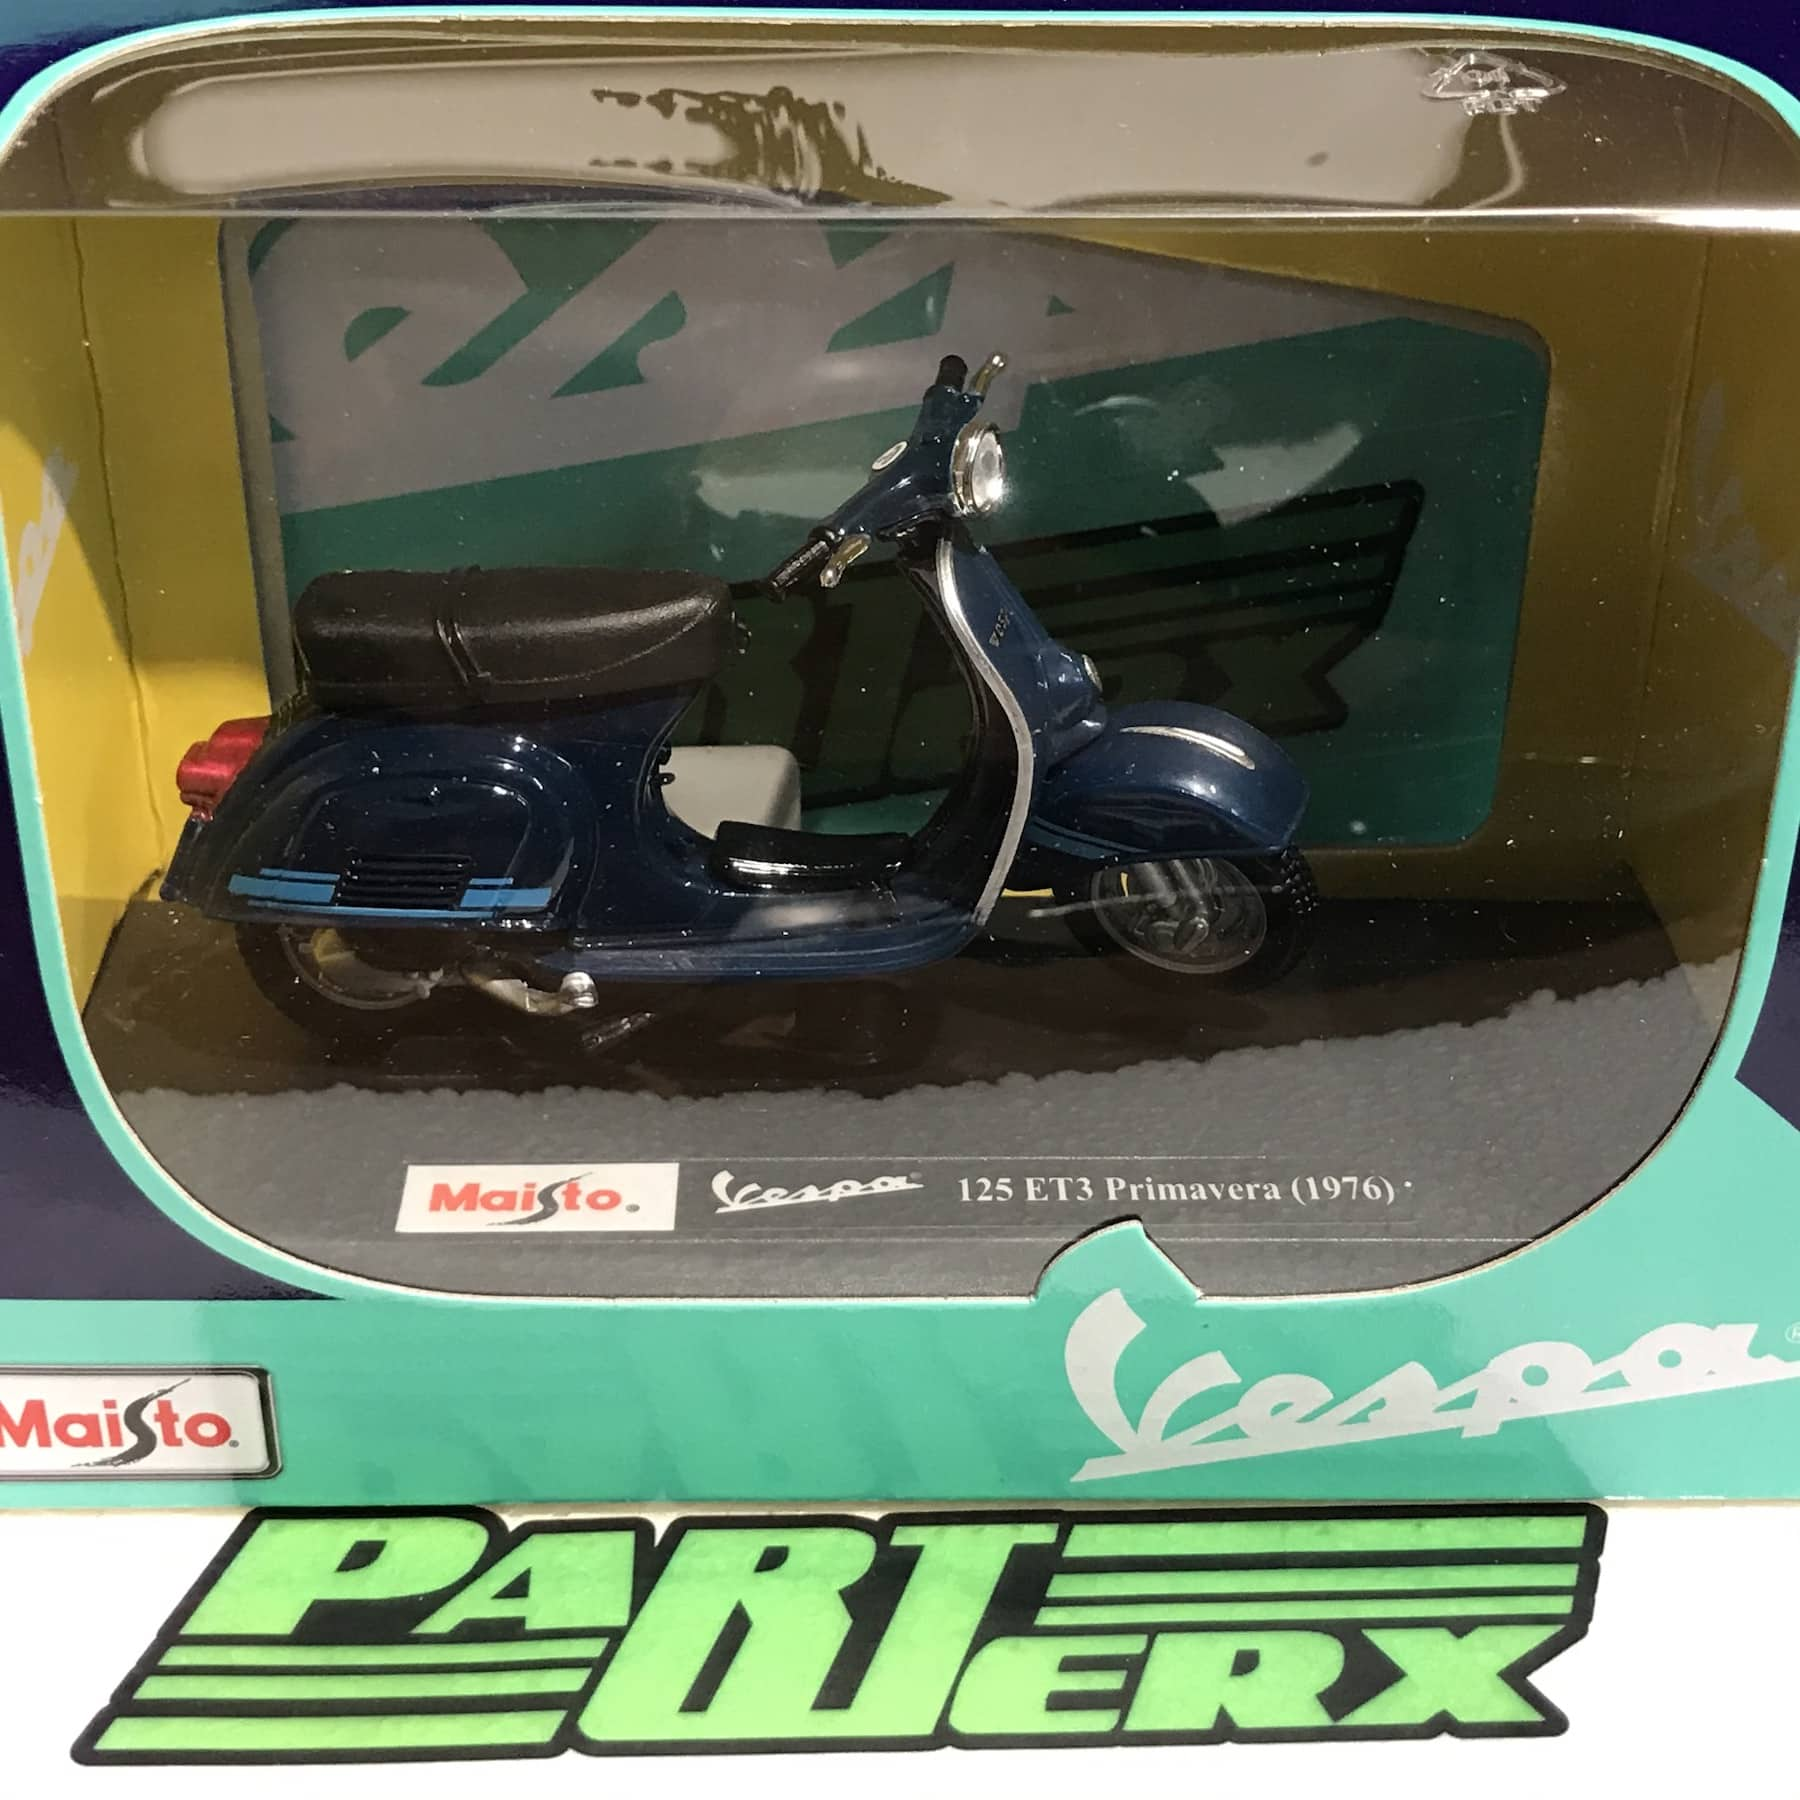 Vespa Scooter 125 ET3 Primavera 1976 1:18 Scale Model Kids Childs Toy Fathers Day Dads Gift Present